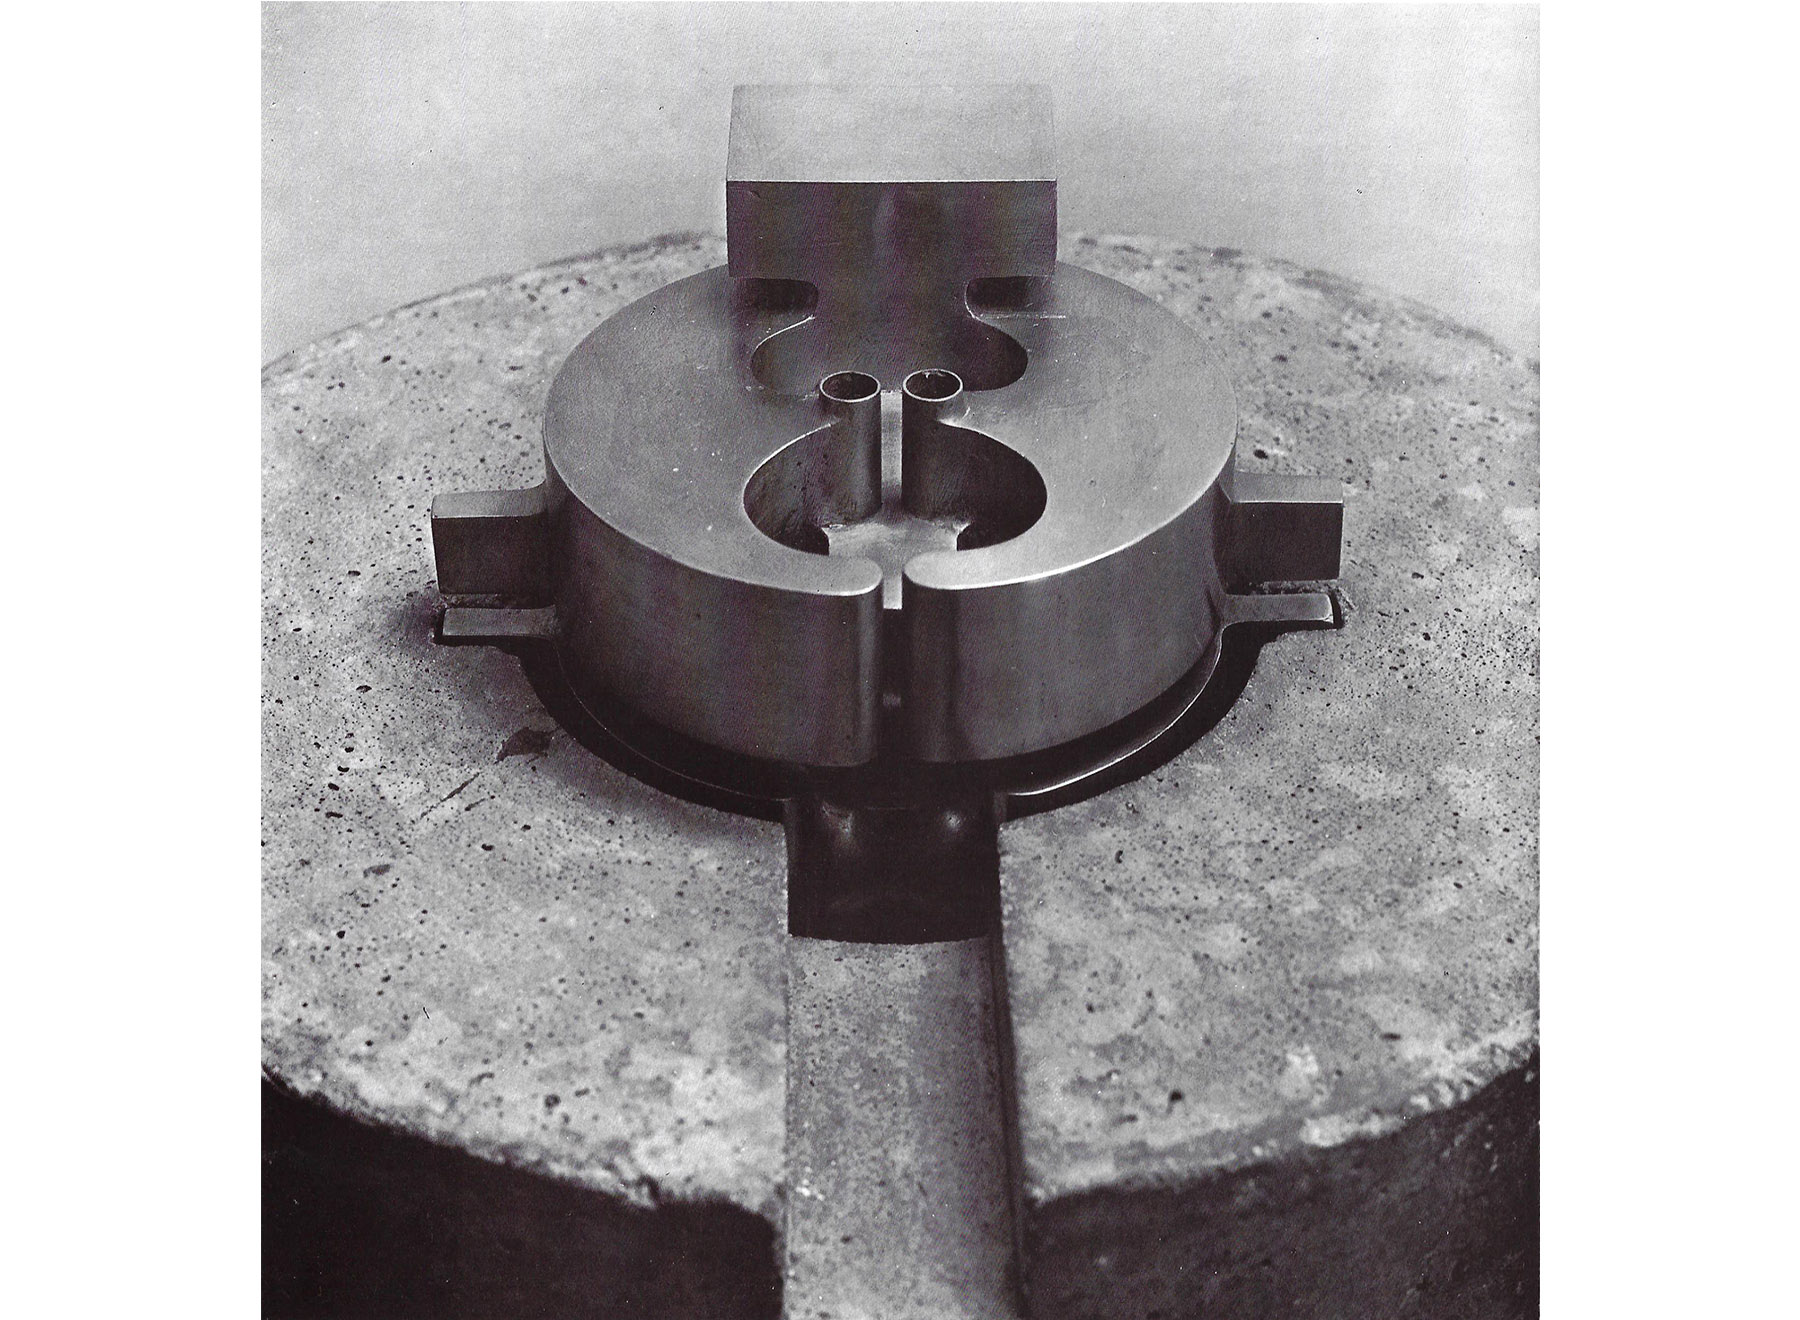 underground building with extendable core, Walter Pichler, 1963